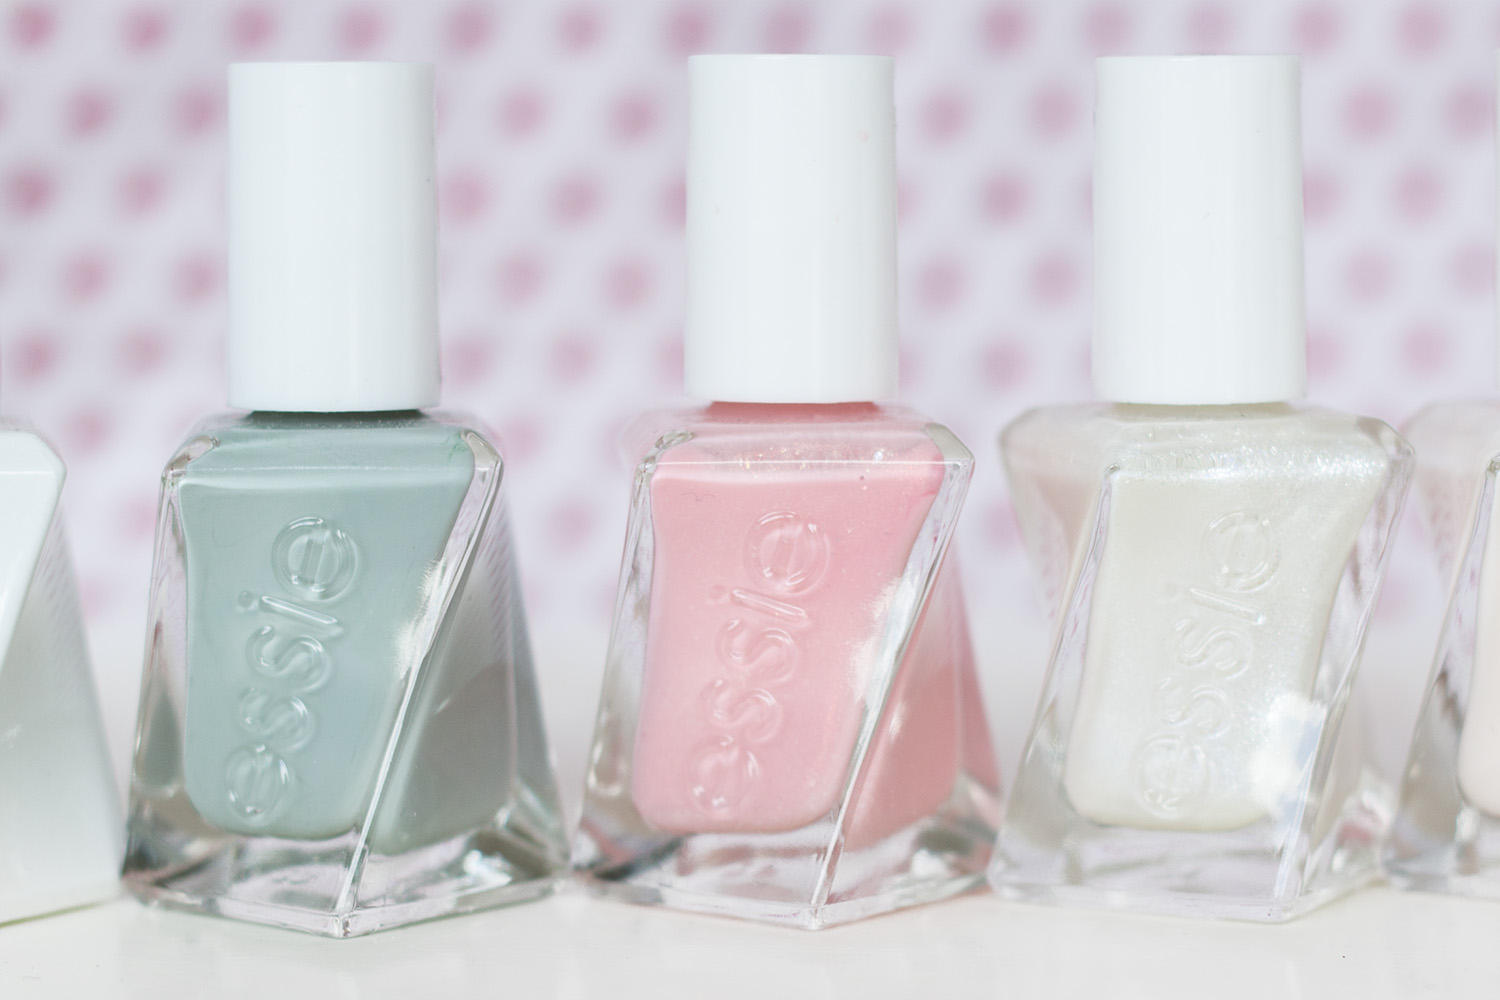 Gel Couture Bridal Collection - Essie